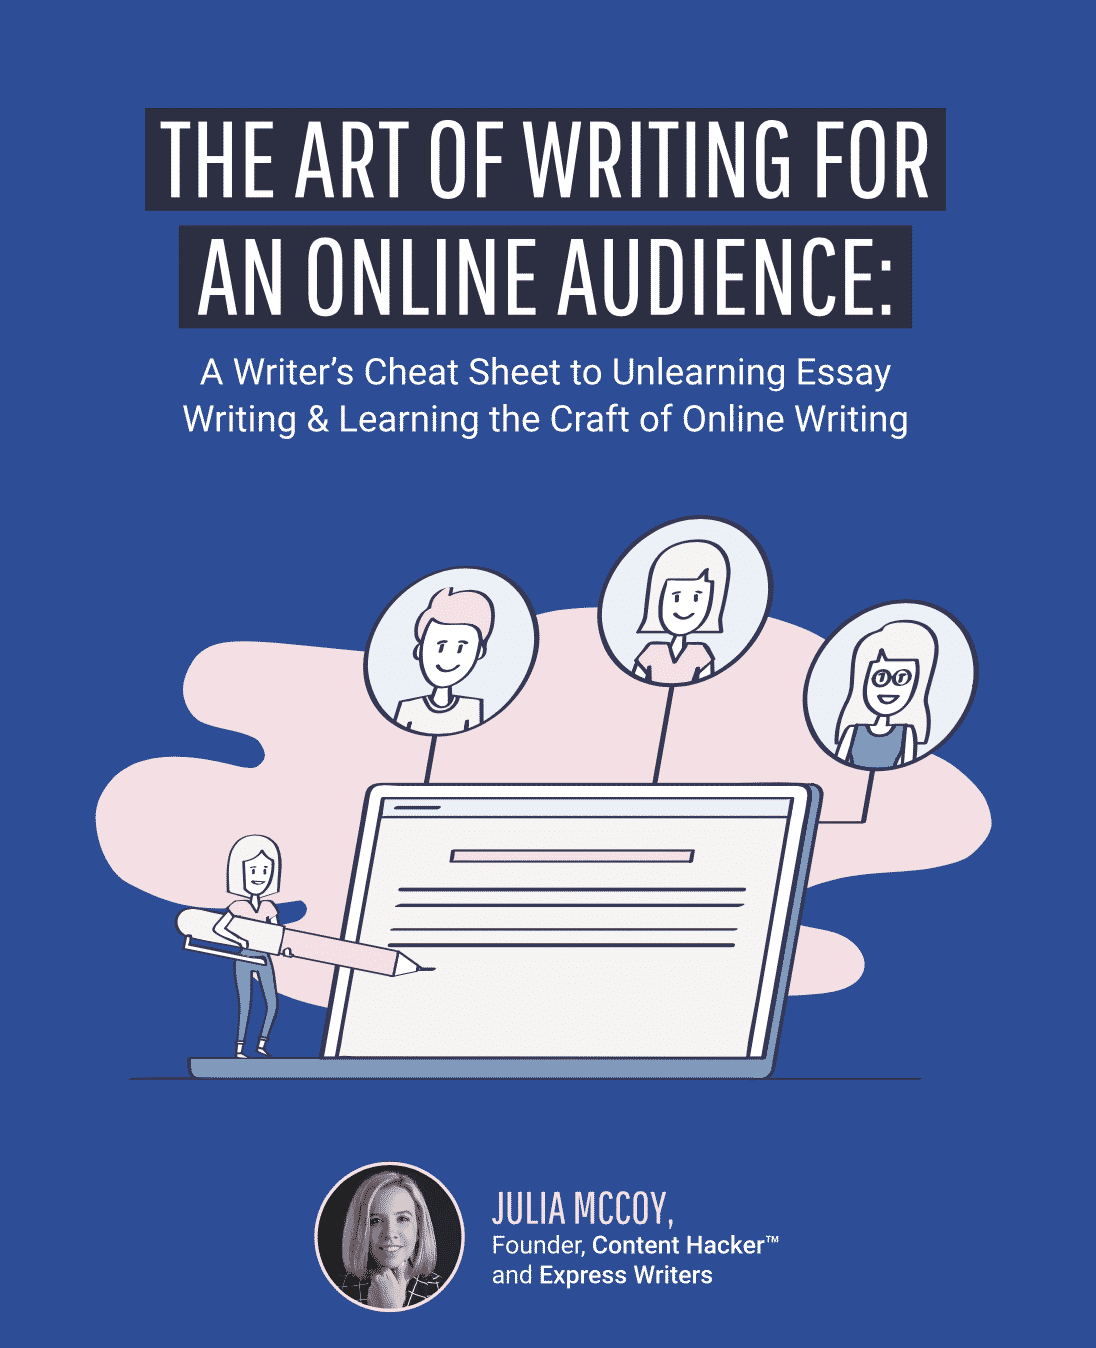 The Art of Writing for an Online Audience cover